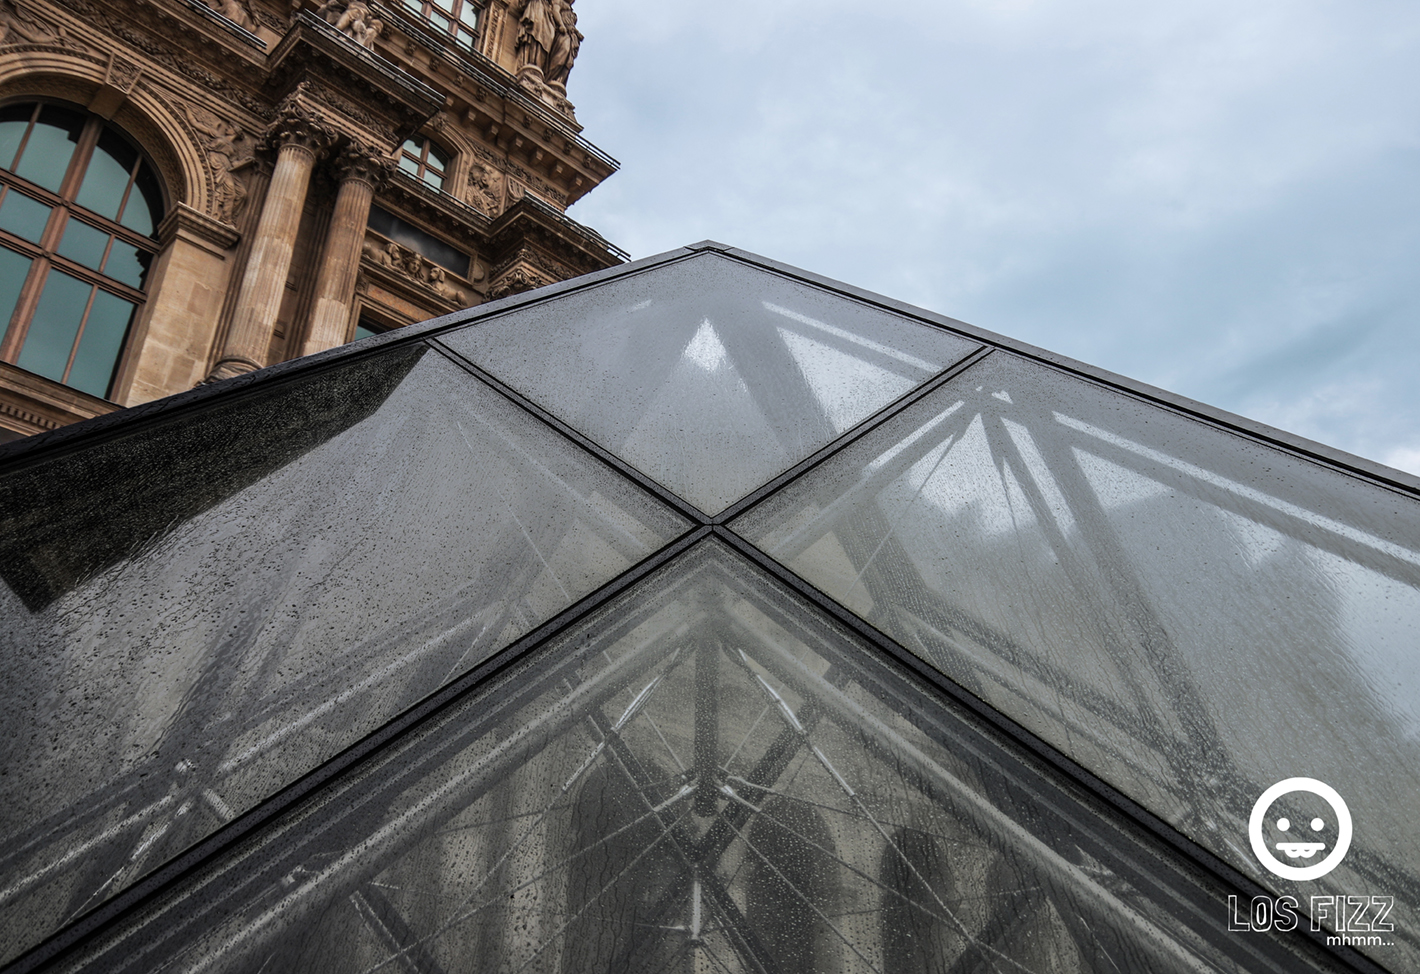 Small glass pyramid at the Louvre in Paris, France. Photo By LosFizz.